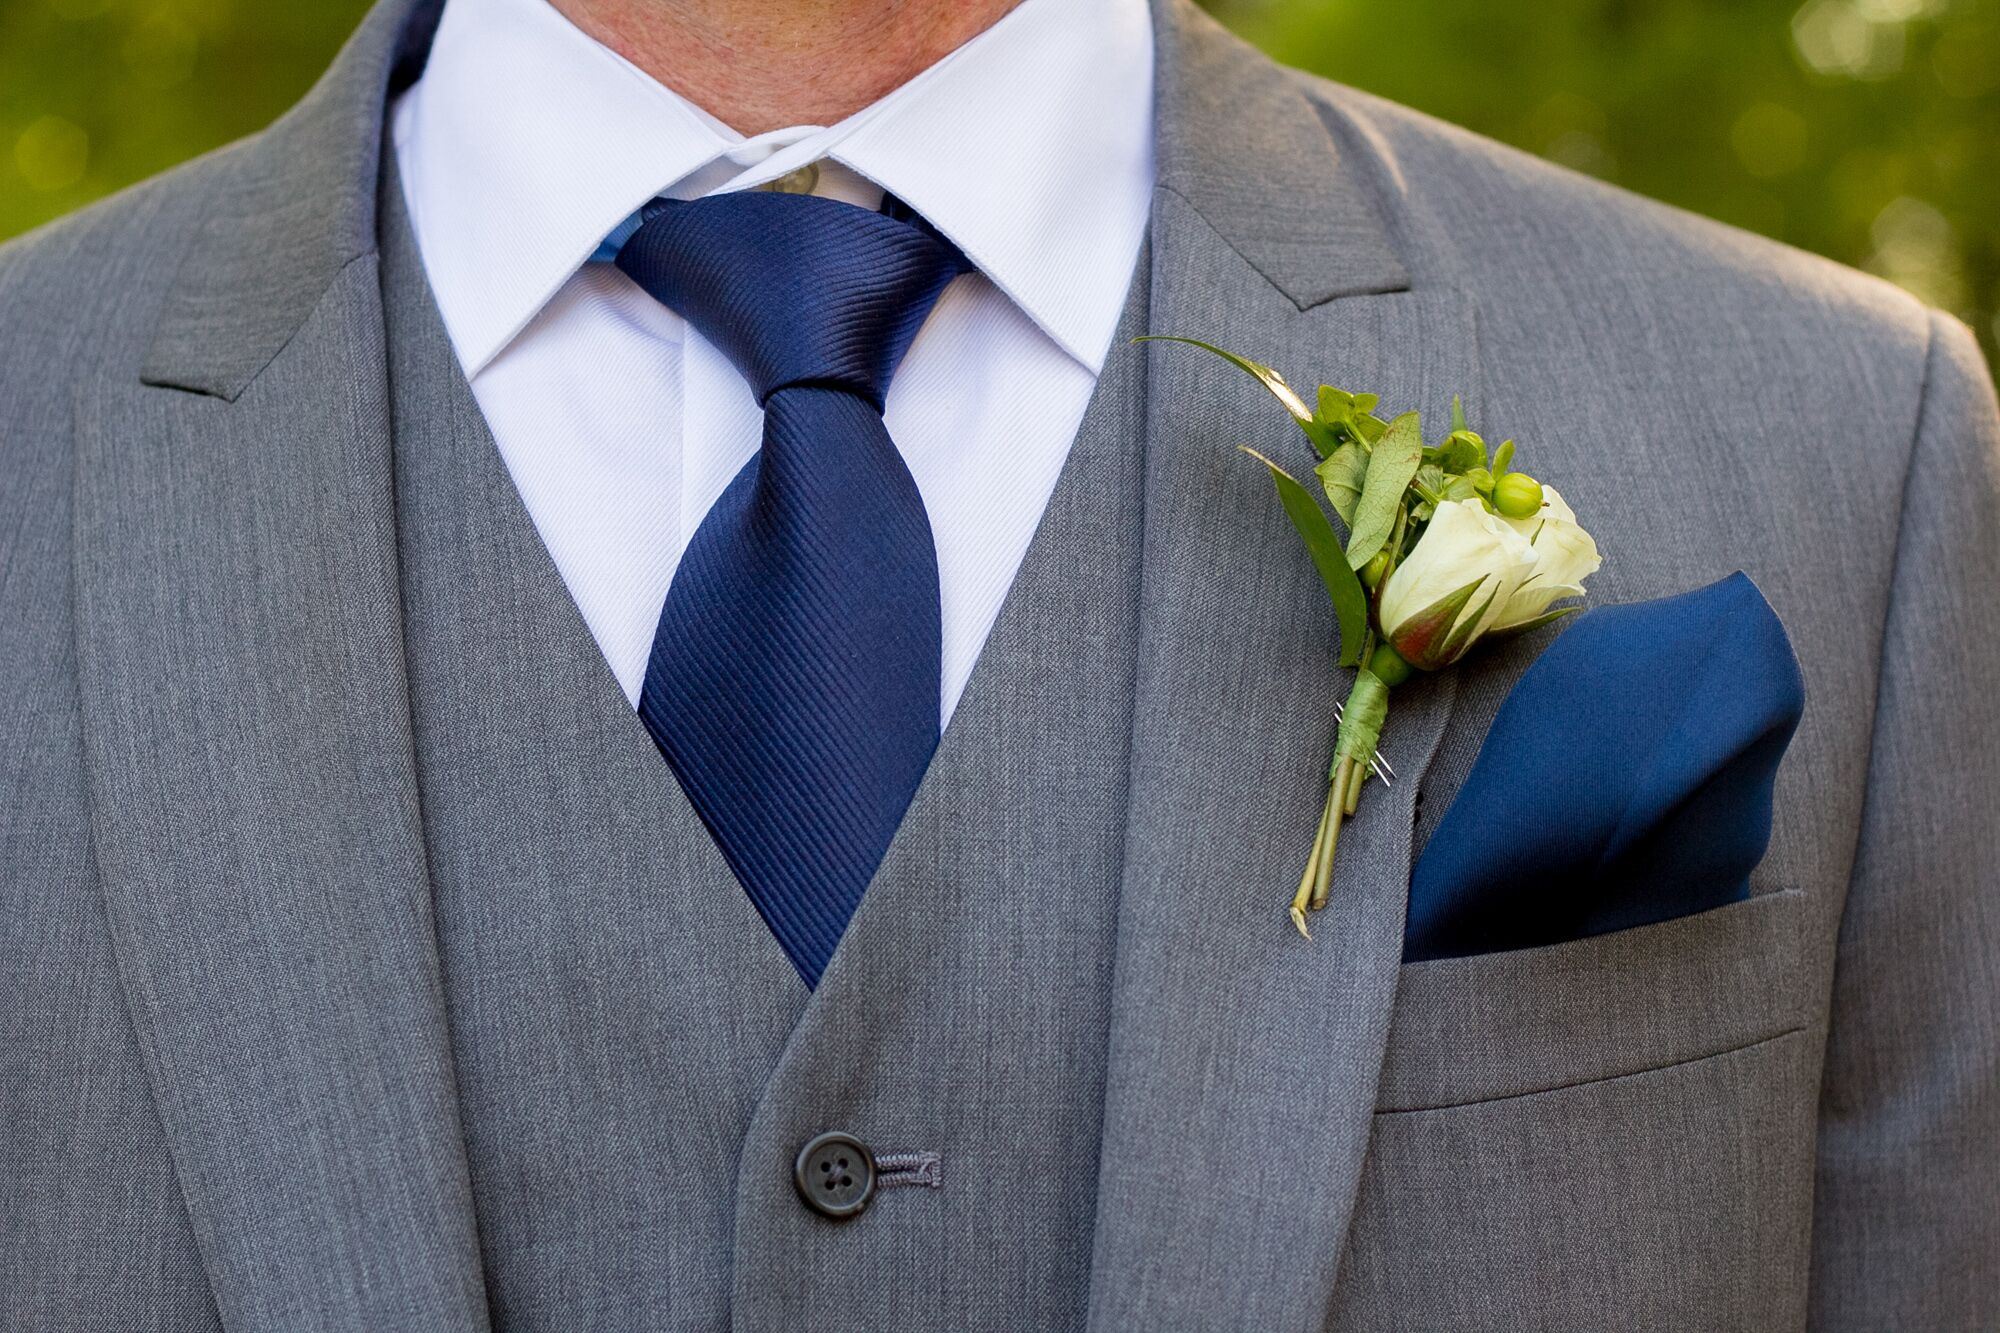 Gray men 39 s wearhouse suit with navy tie and pocket square for Navy suit gray shirt